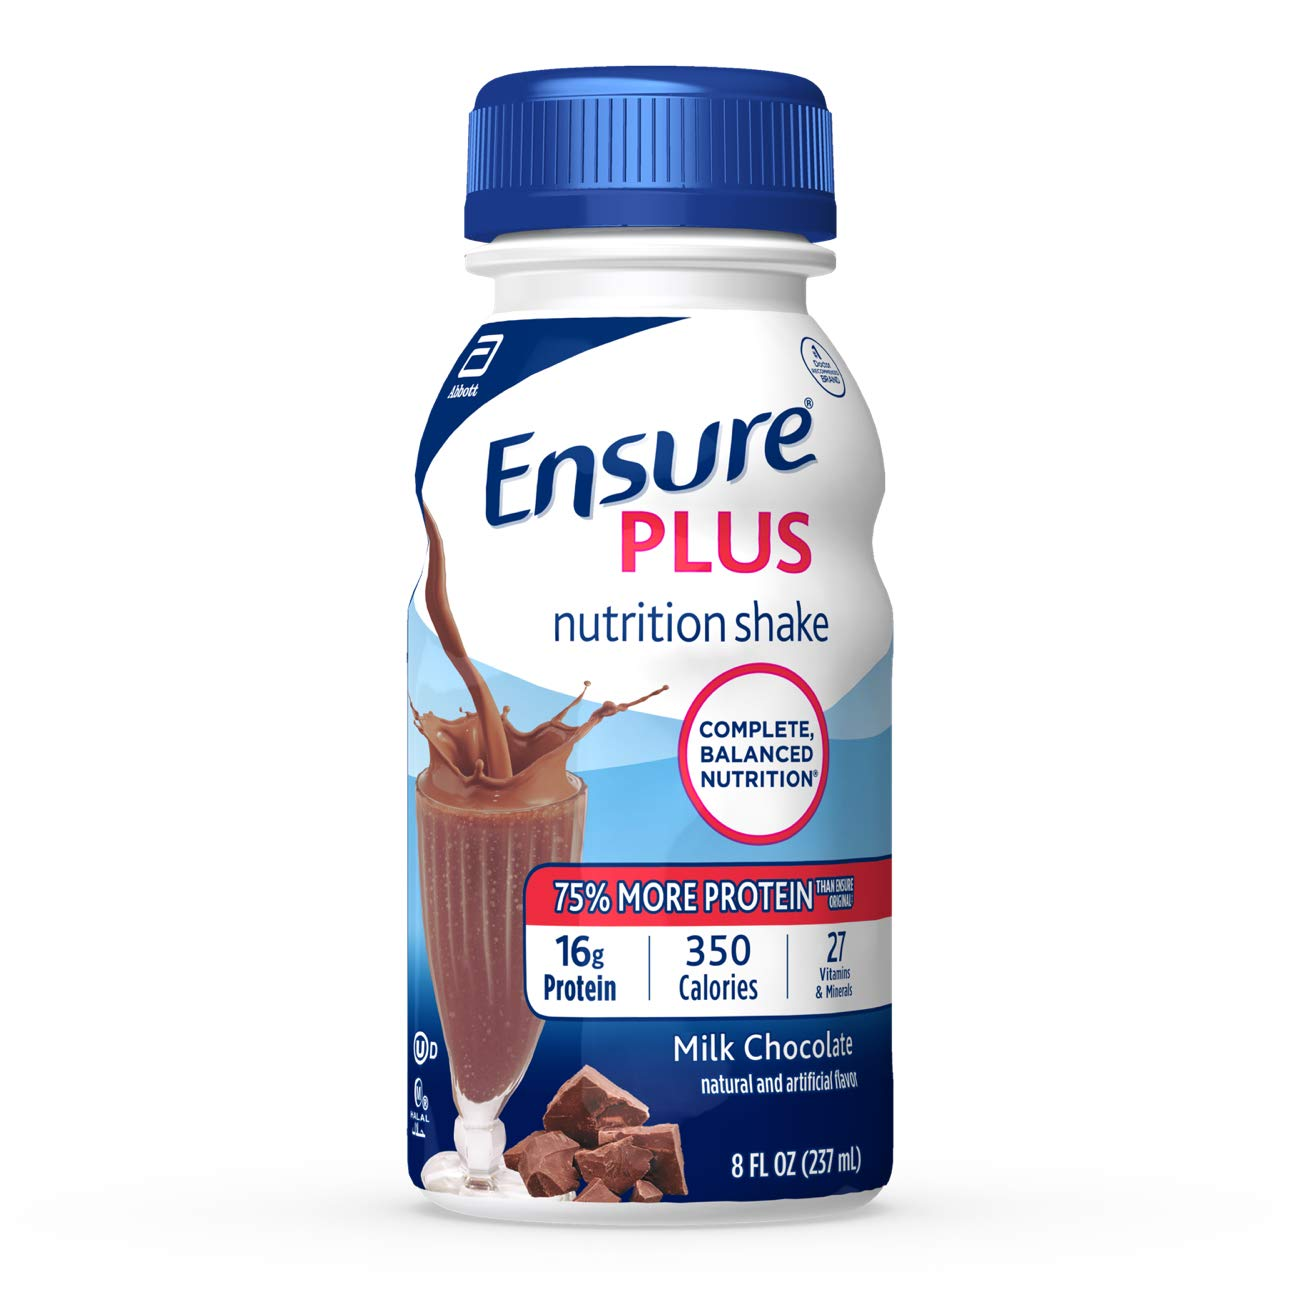 Ensure Plus Nutrition Shake With 16 Grams of High-Quality Protein, Meal Replacement Shakes, Milk Chocolate, 8 fl oz, 24 Count